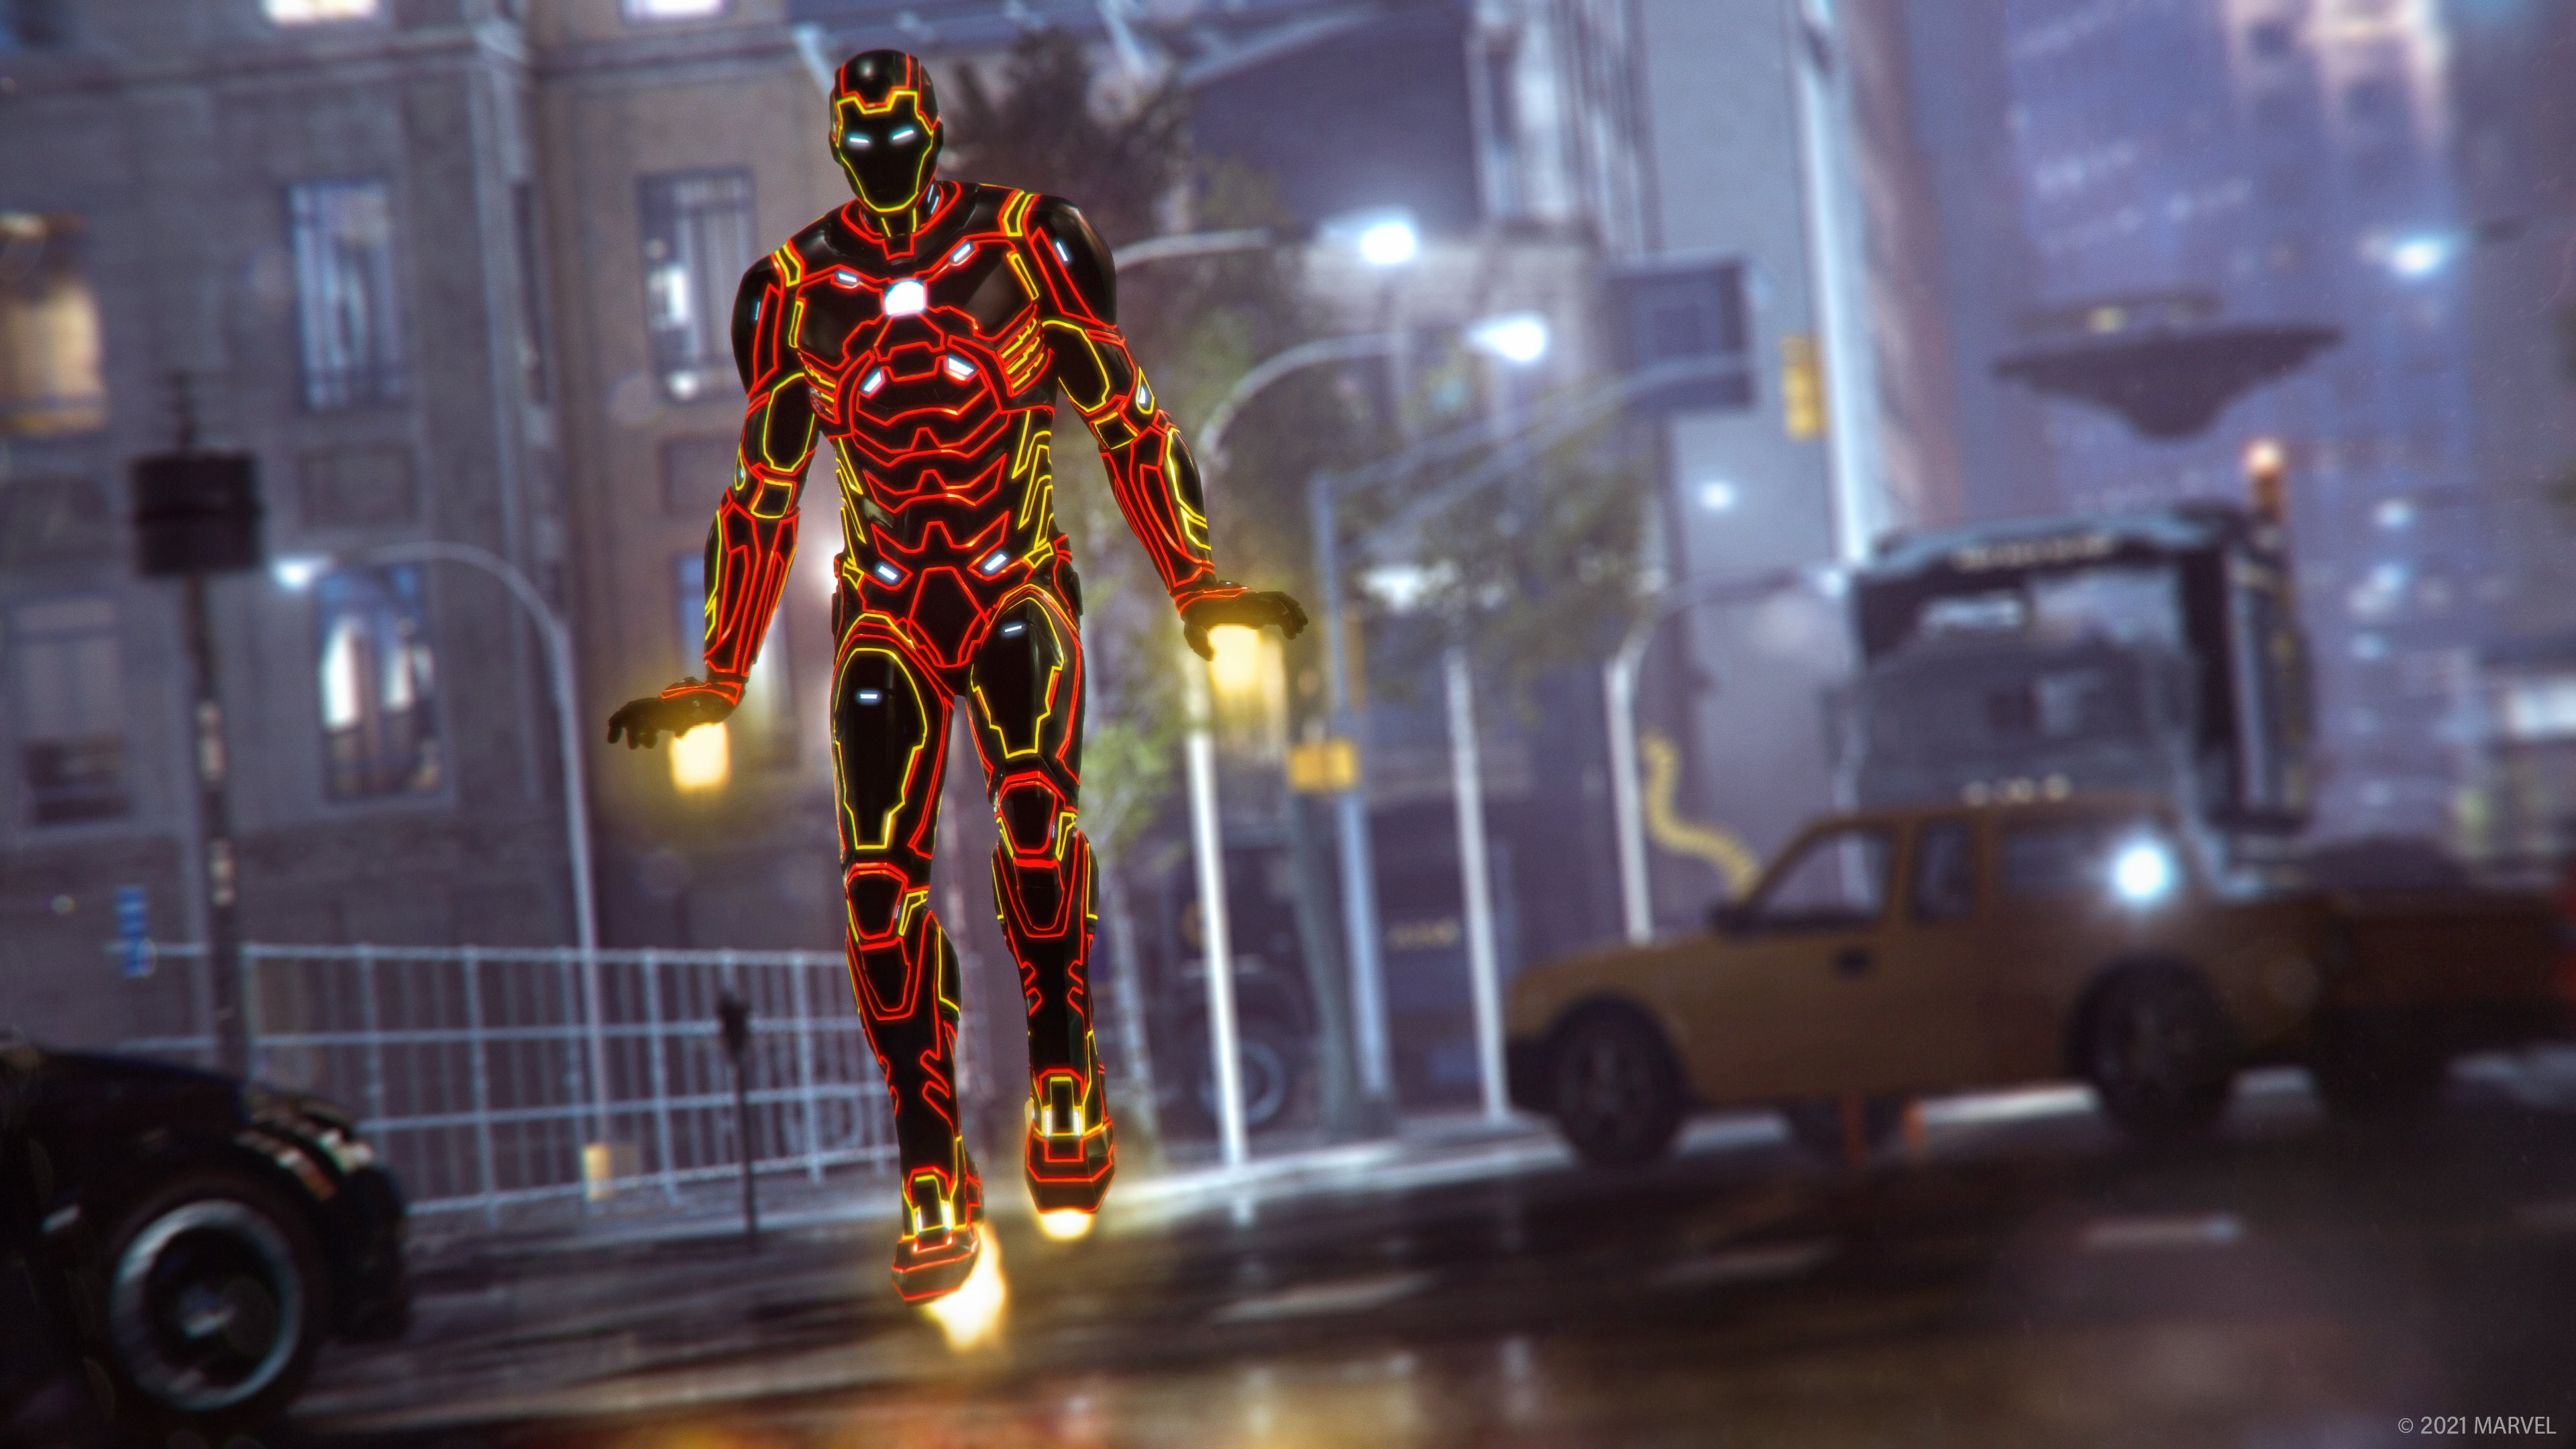 Iron Man hovers above the city street in the laser-bright piping of the Monatomic outfit.